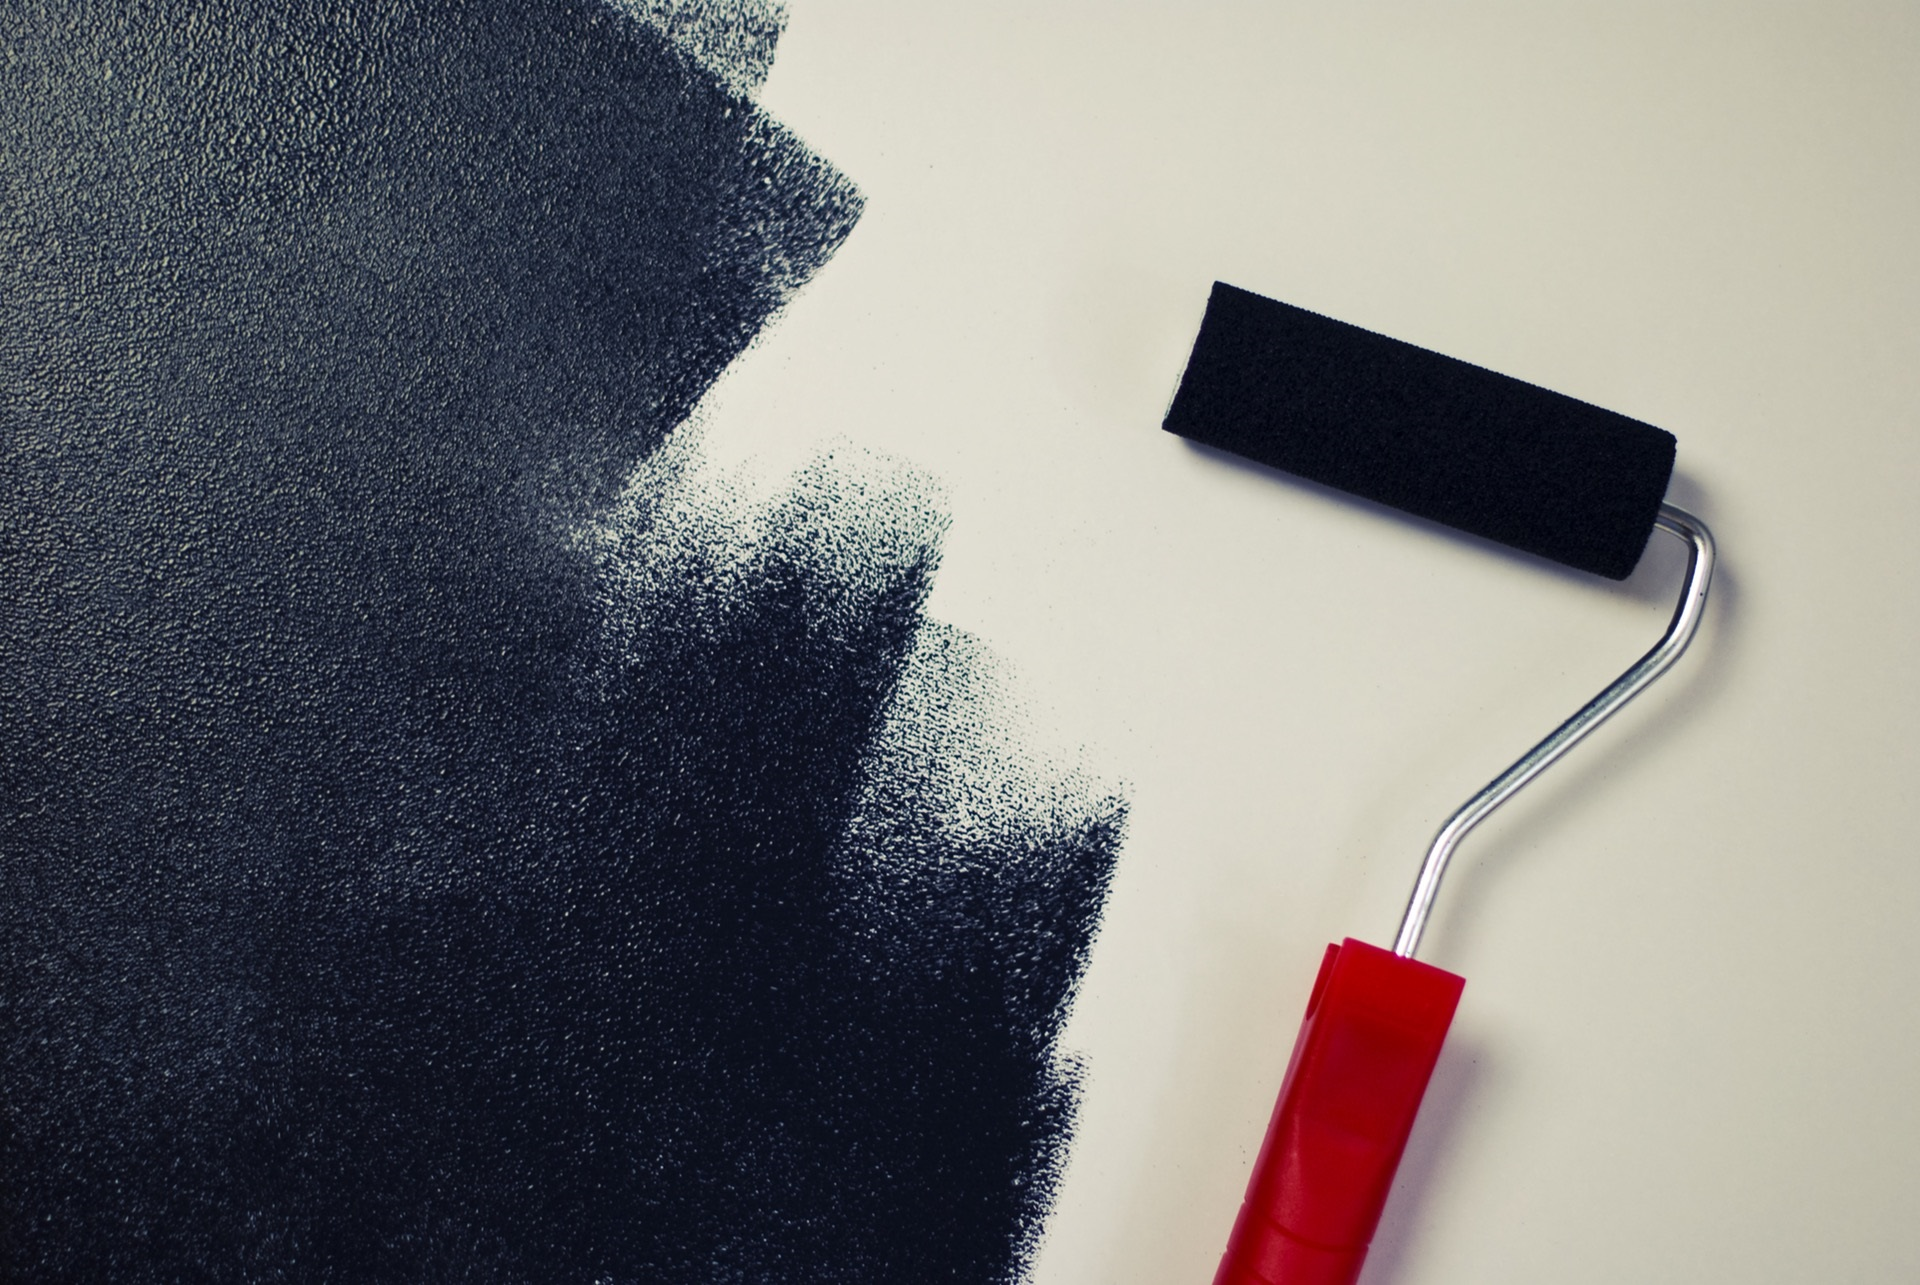 Construction Contracting: 4 Essential Safety Strategies When Mixing Volatile Paints